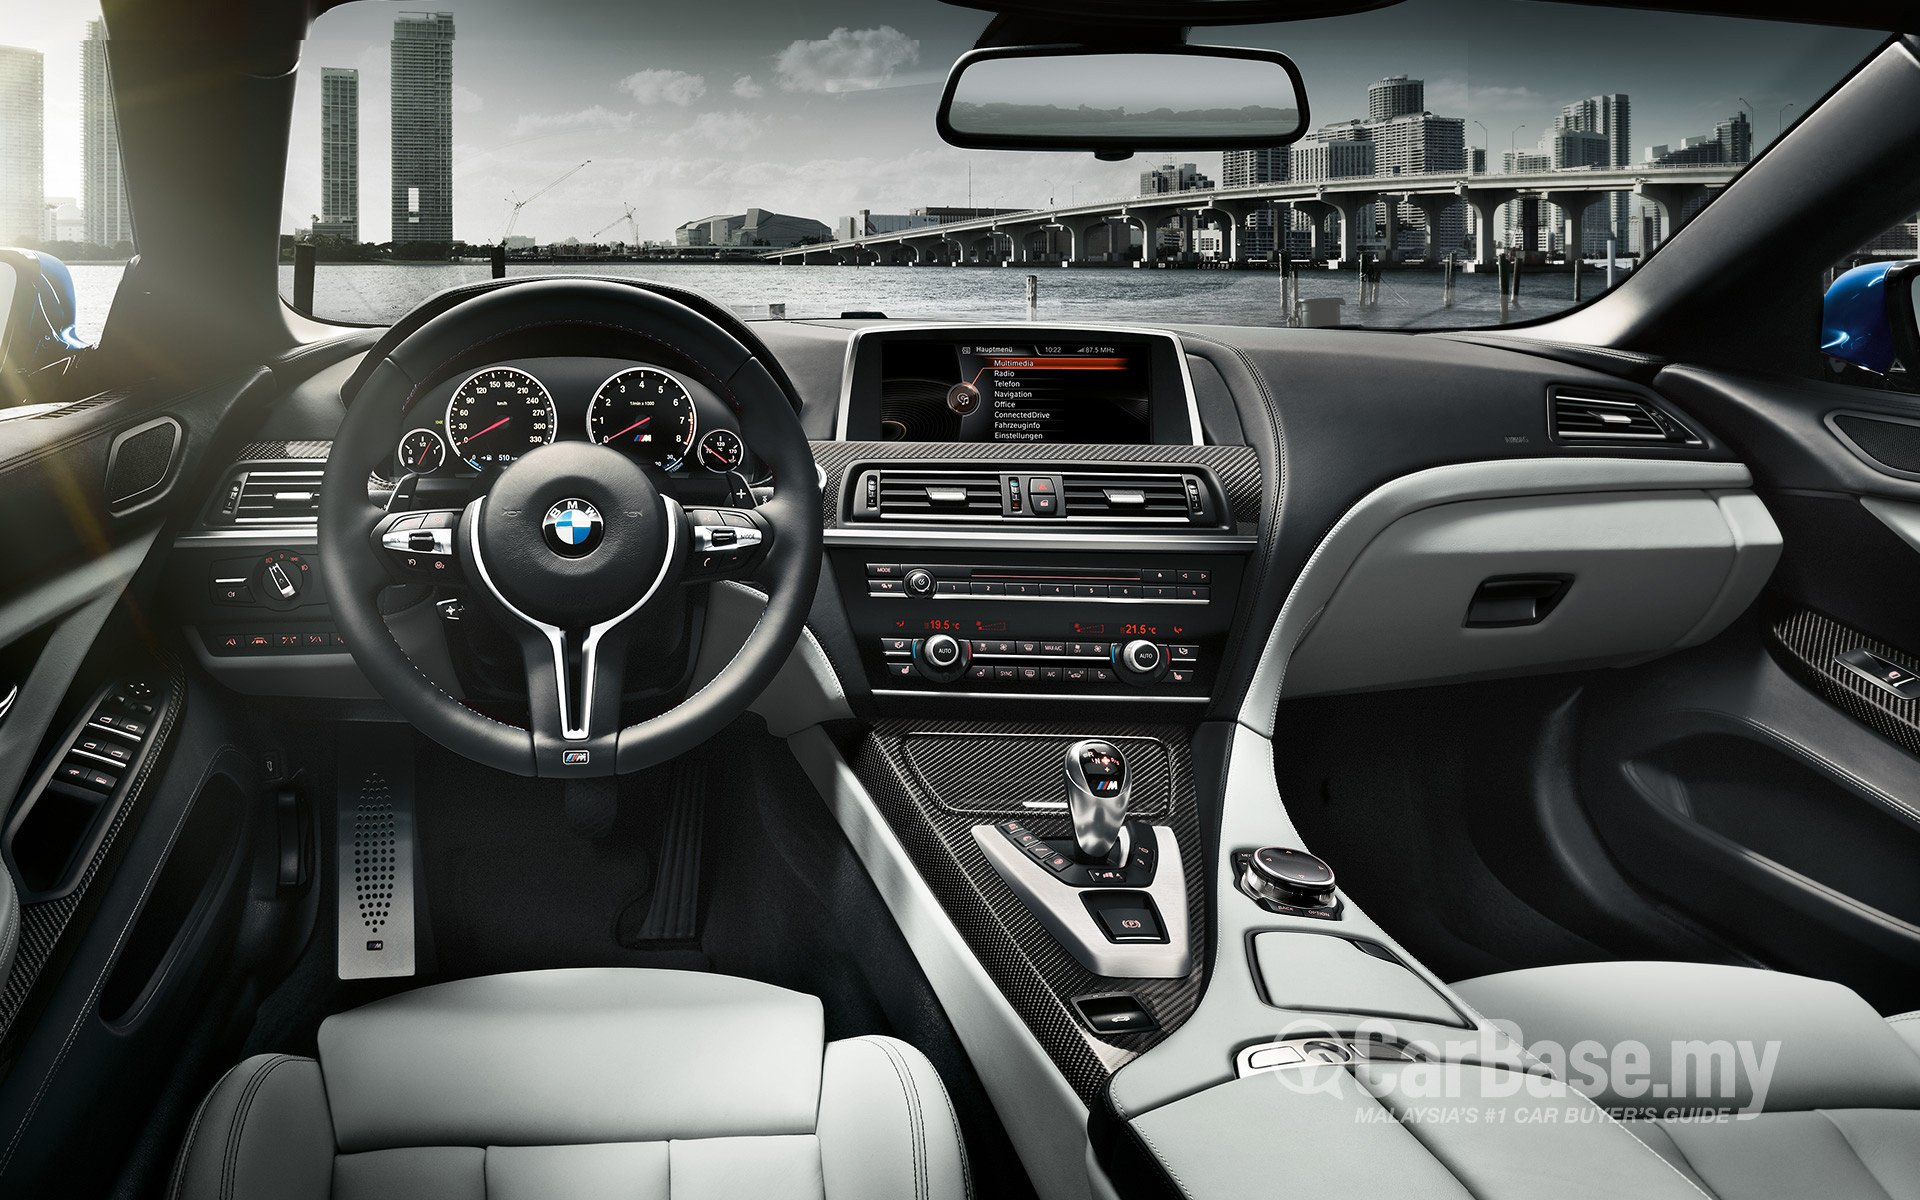 Bmw M6 Coupe F13 2012 Interior Image 6468 In Malaysia